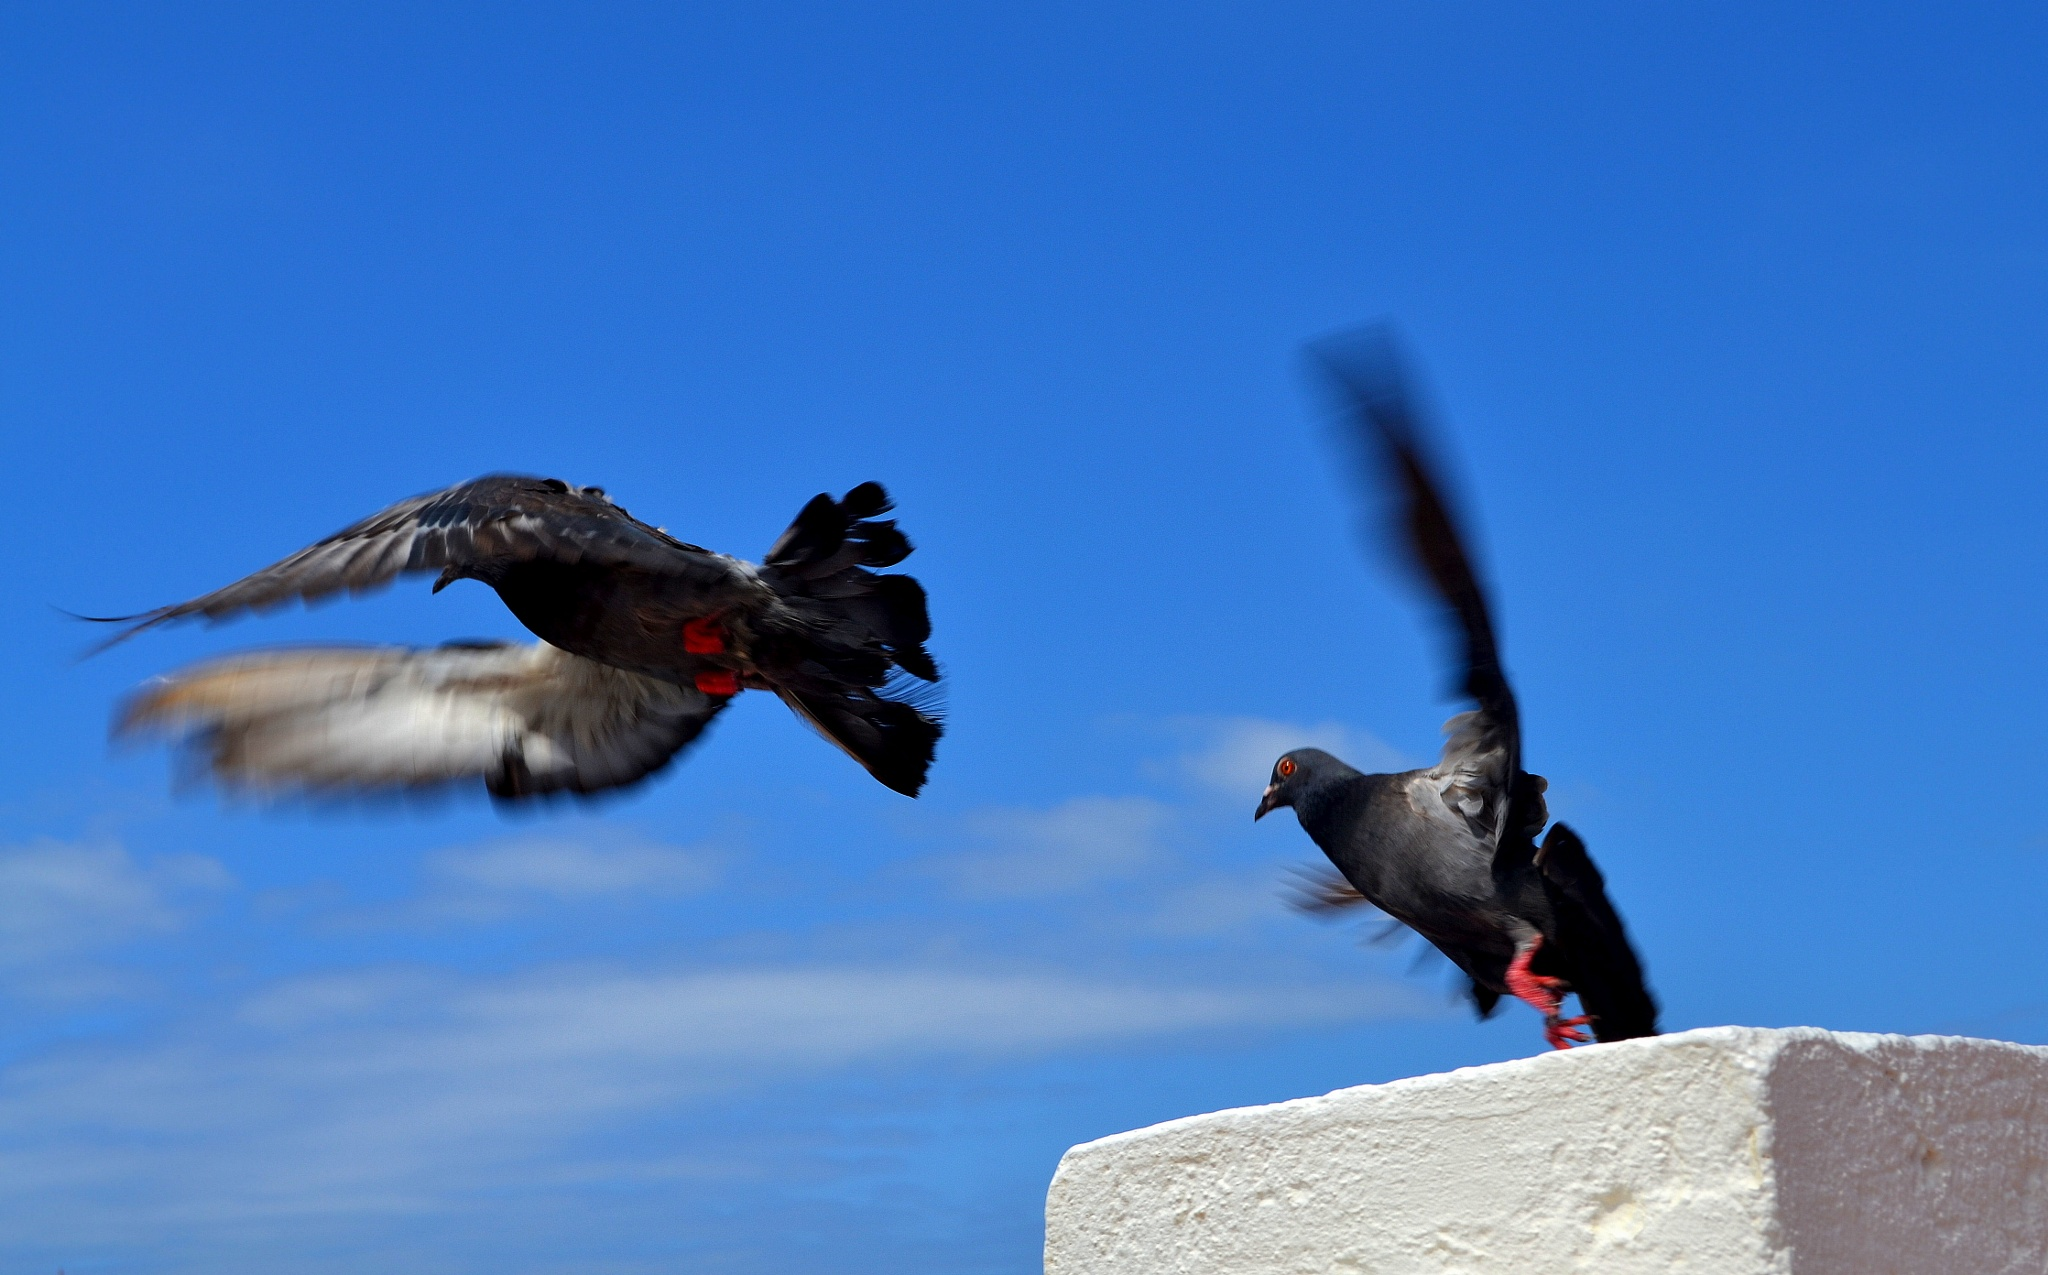 When they fly by luistabeliao